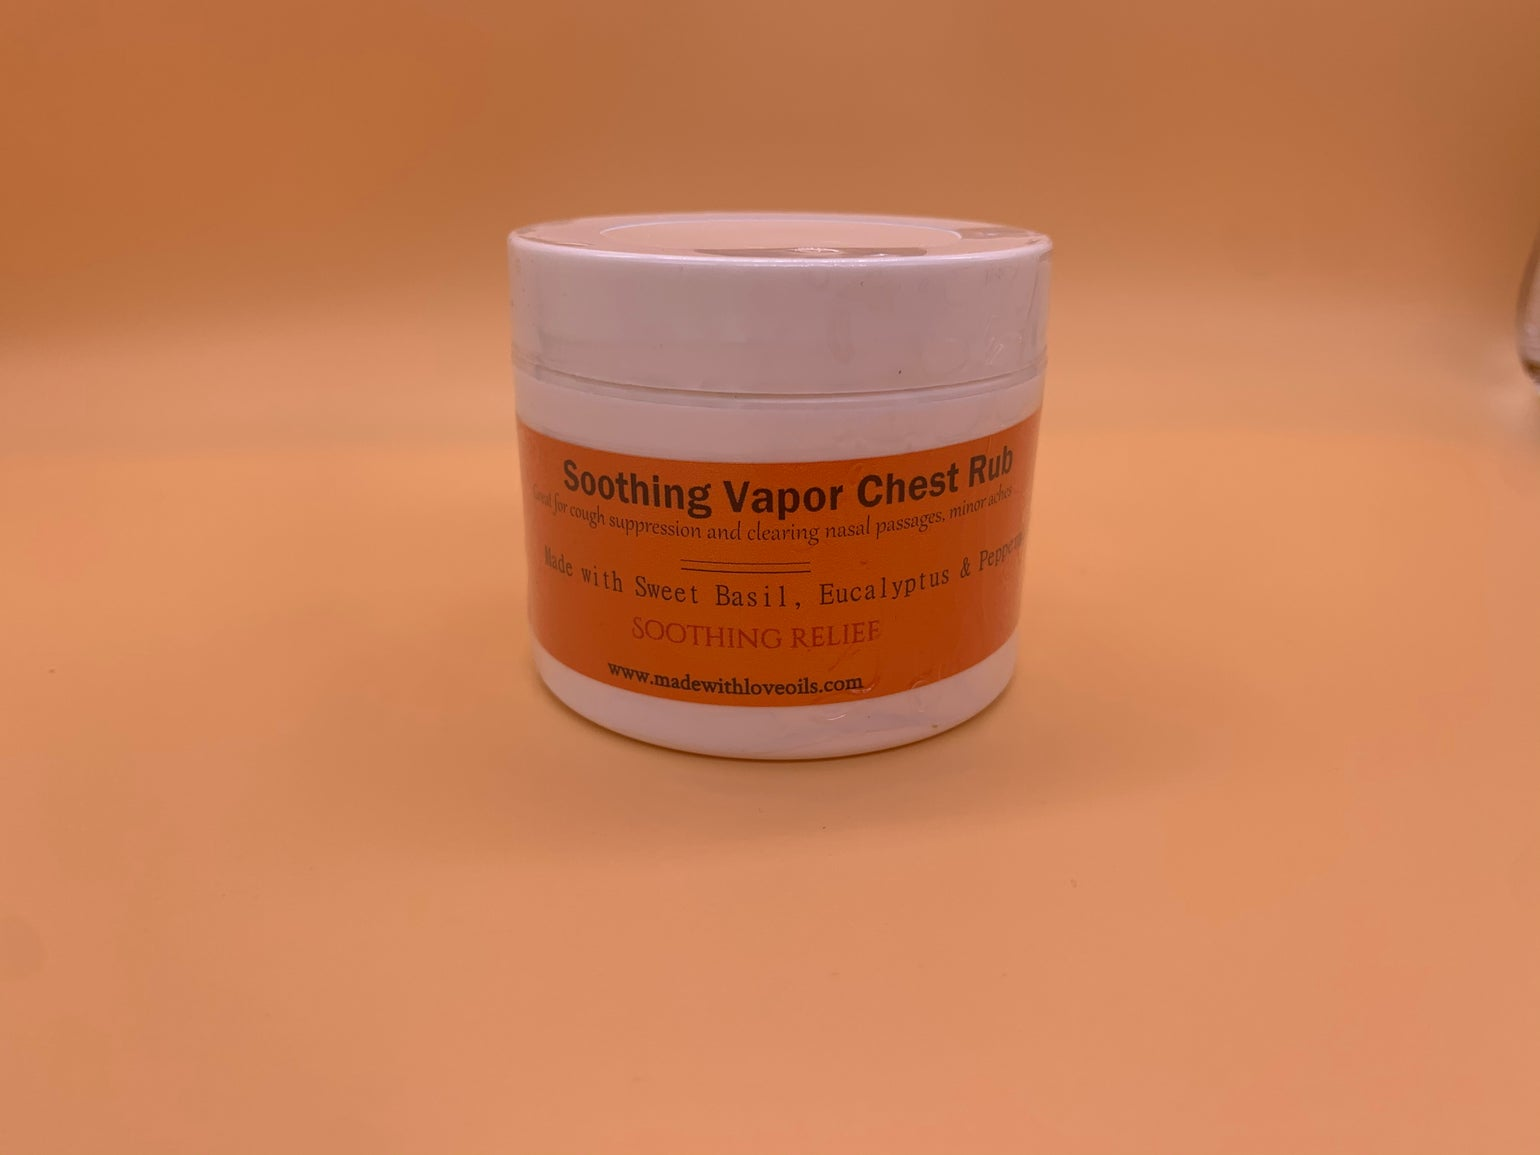 Image of Soothing Vapor Chest Rub